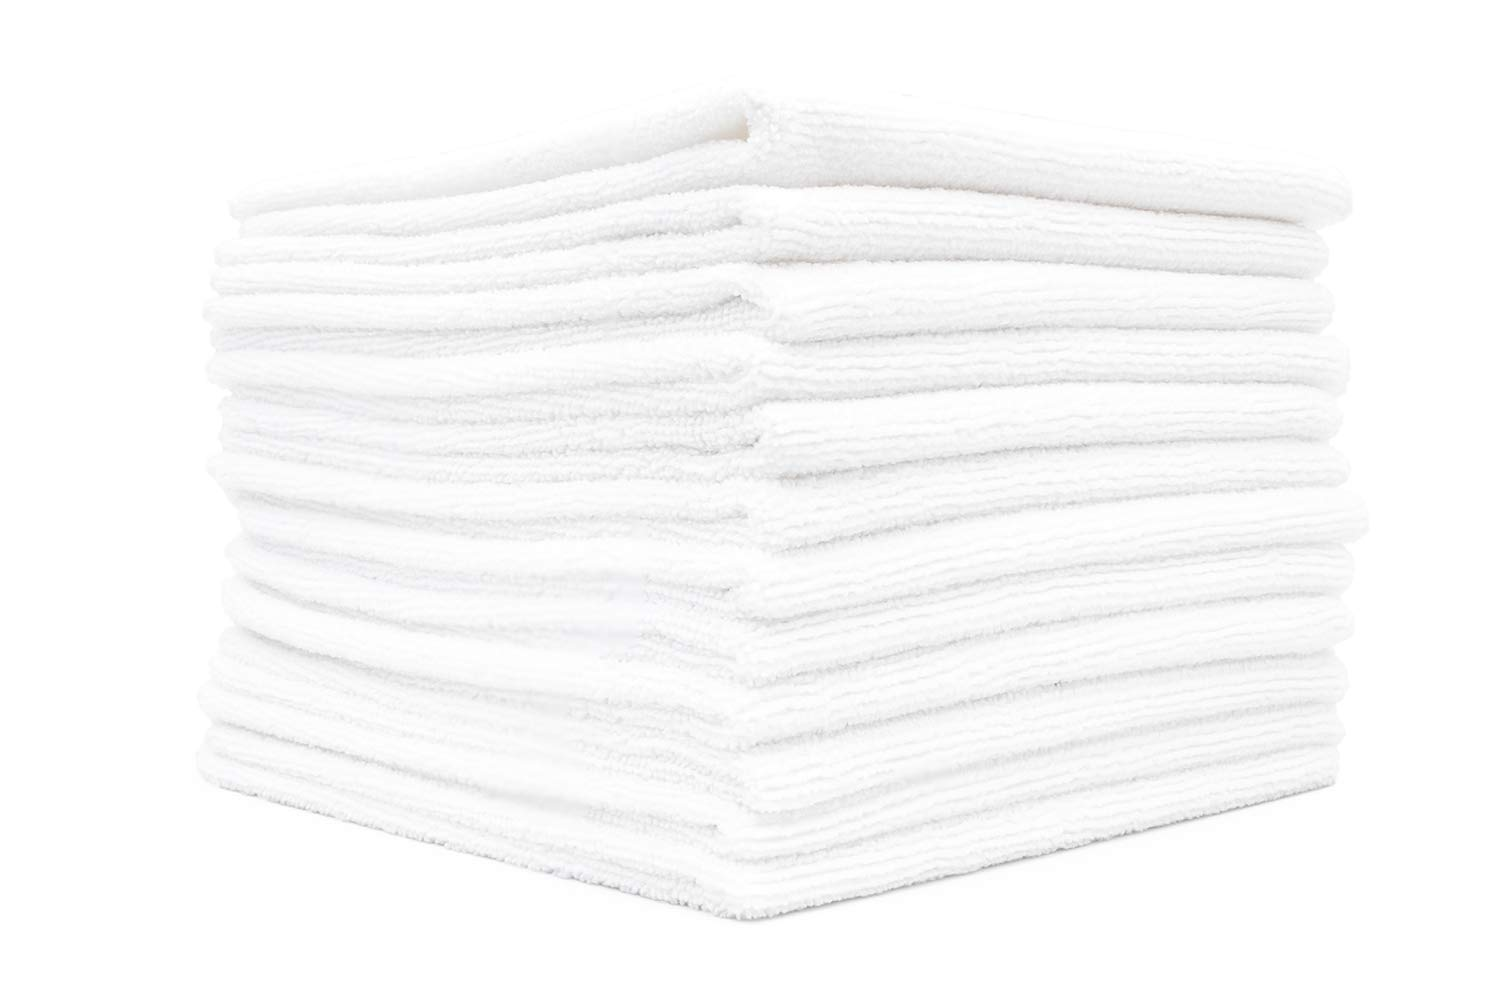 THE RAG COMPANY 16 in x 16 in LINT-Free 12-Pack Commercial Grade All-Purpose Microfiber Highly Absorbent Streak-Free Cleaning Towels Grey